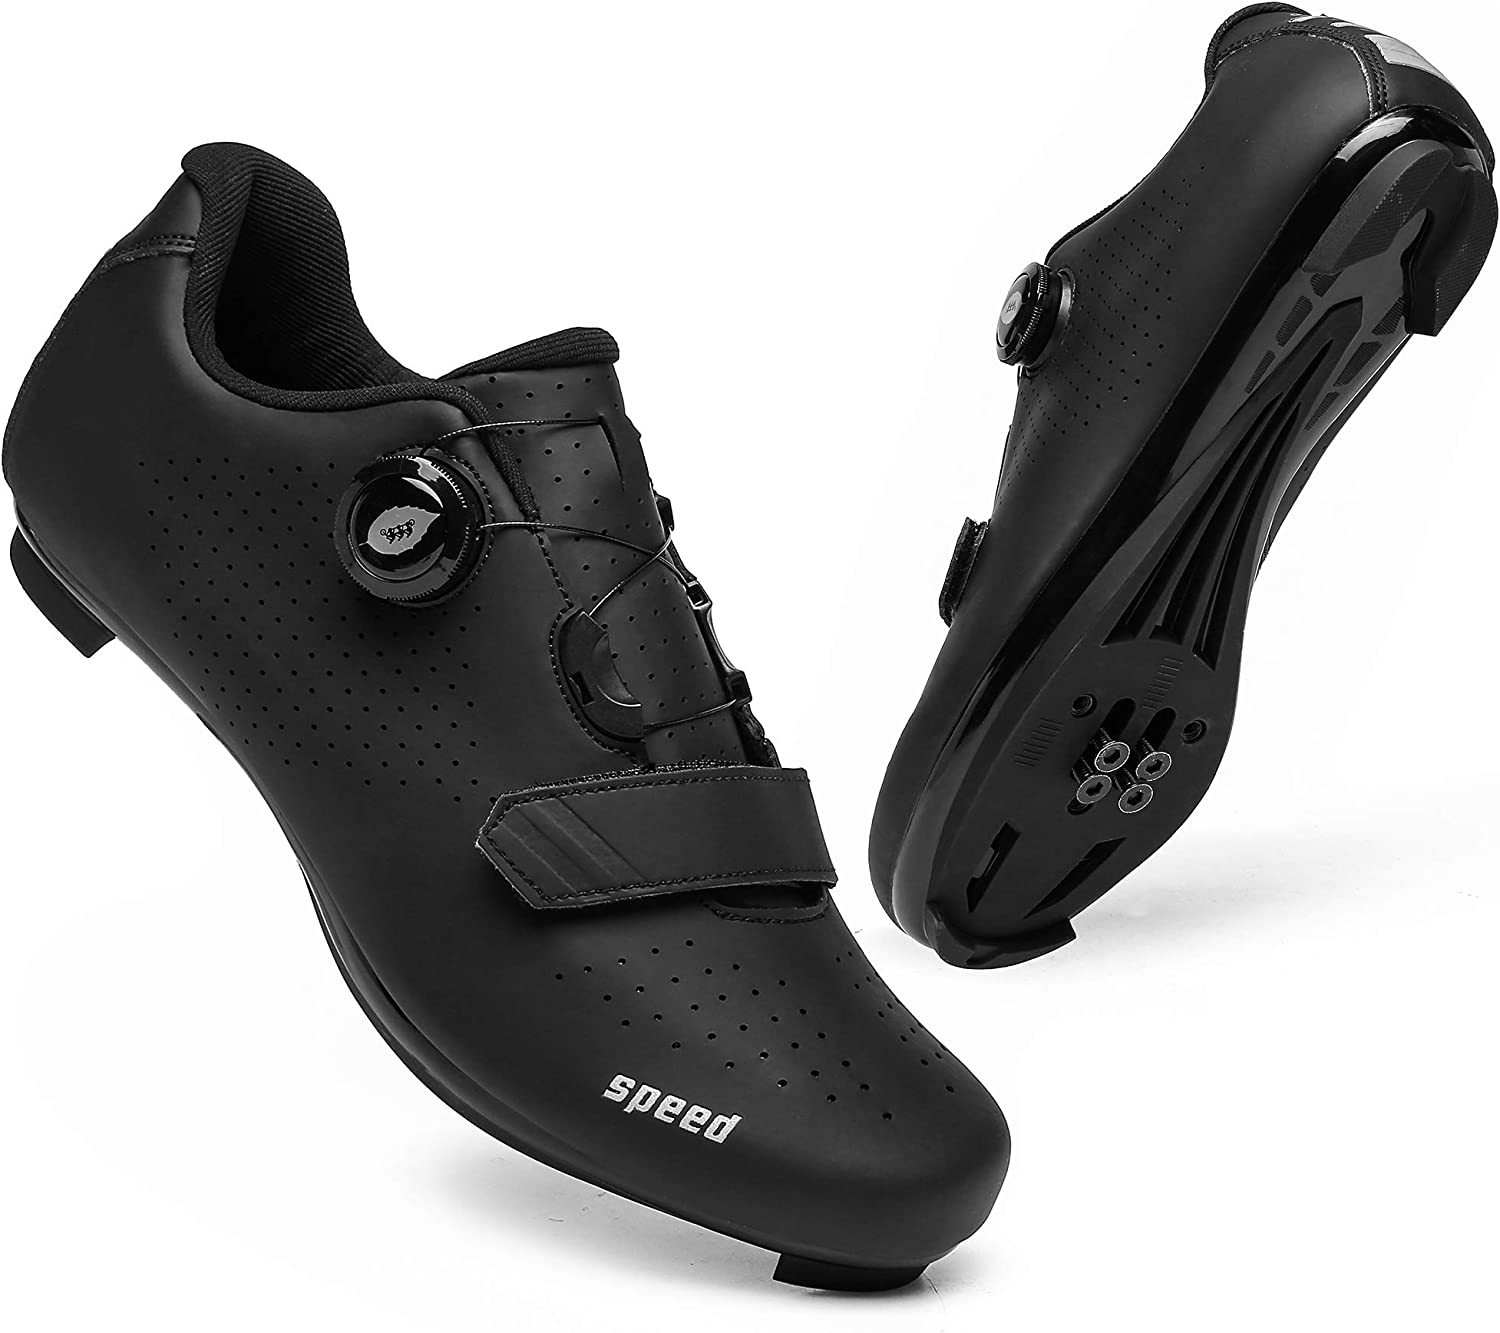 Men Cycling Shoes Road Bike Shoes Road Racing Bikes Comfortable Shoes for Indoor Spin Rider Riding Sneaker